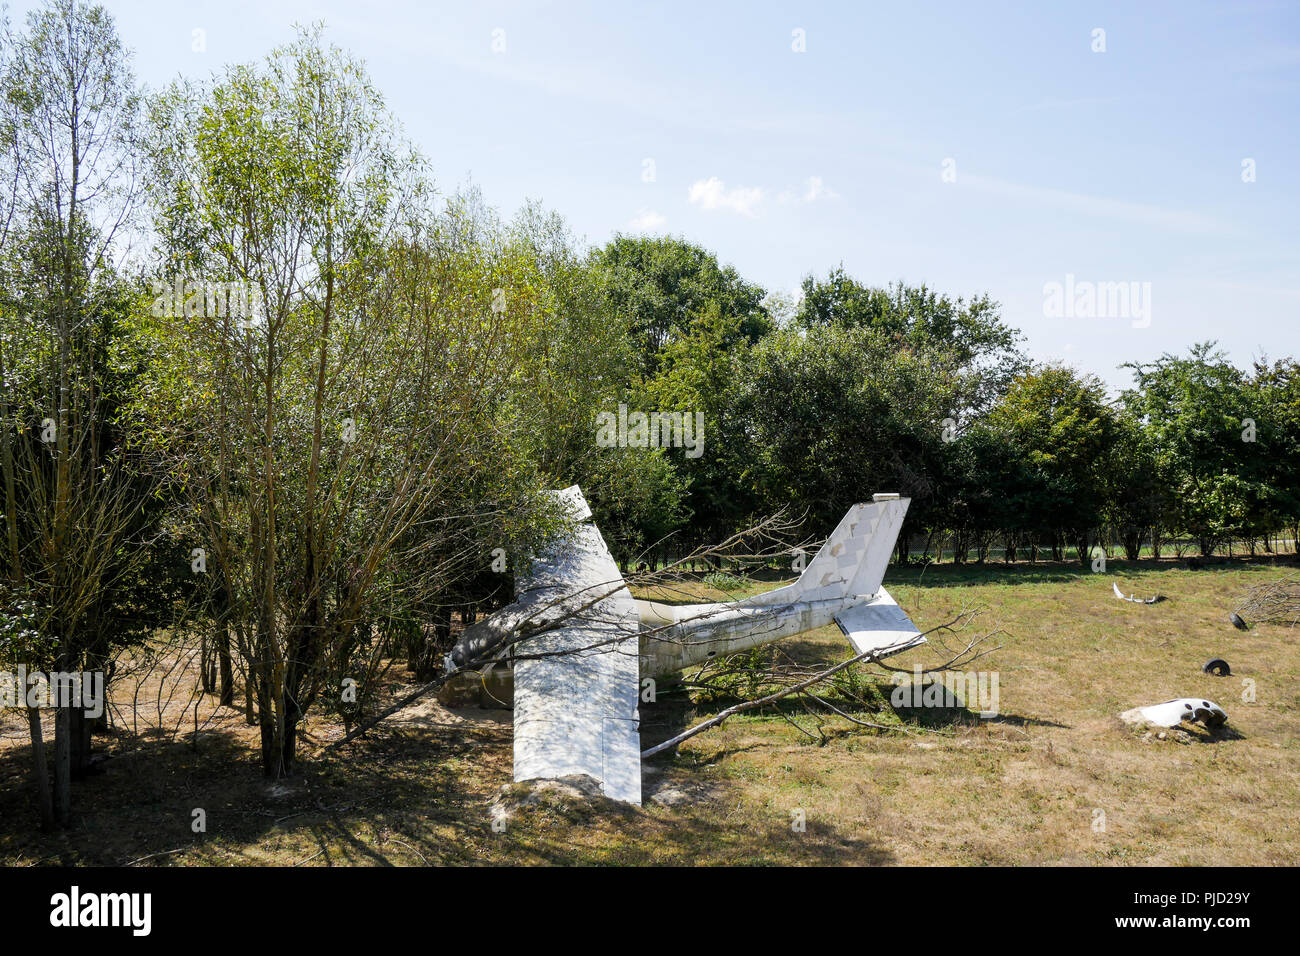 Crashed plane, Birds Park, Villars Les Dombes, France - Stock Image